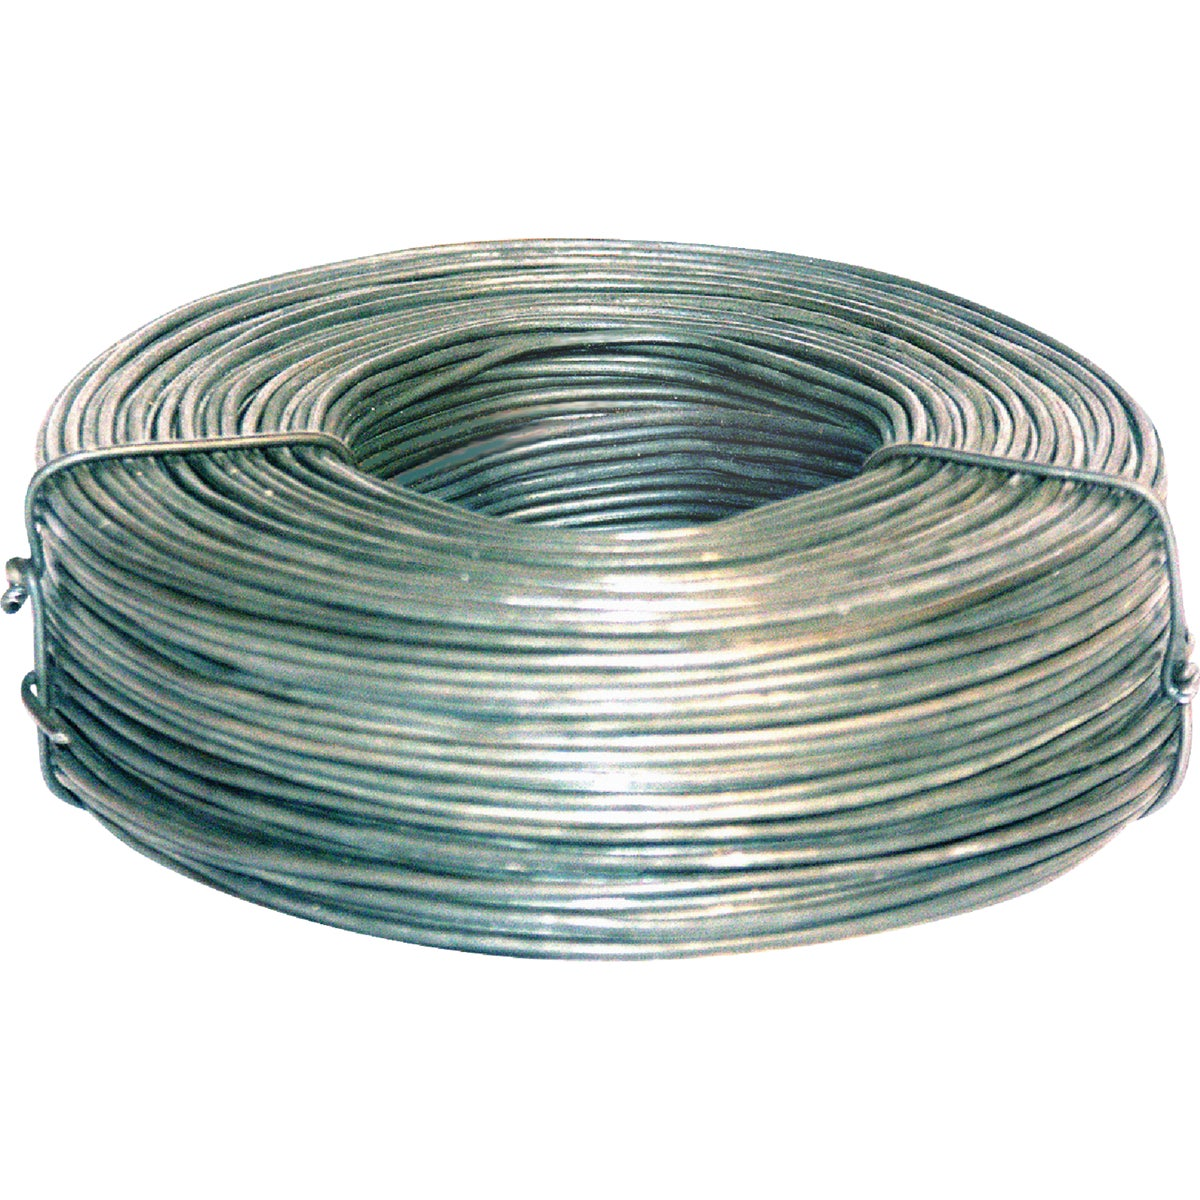 9GA 10# GLV SMOOTH WIRE - SWG910 by Primesource